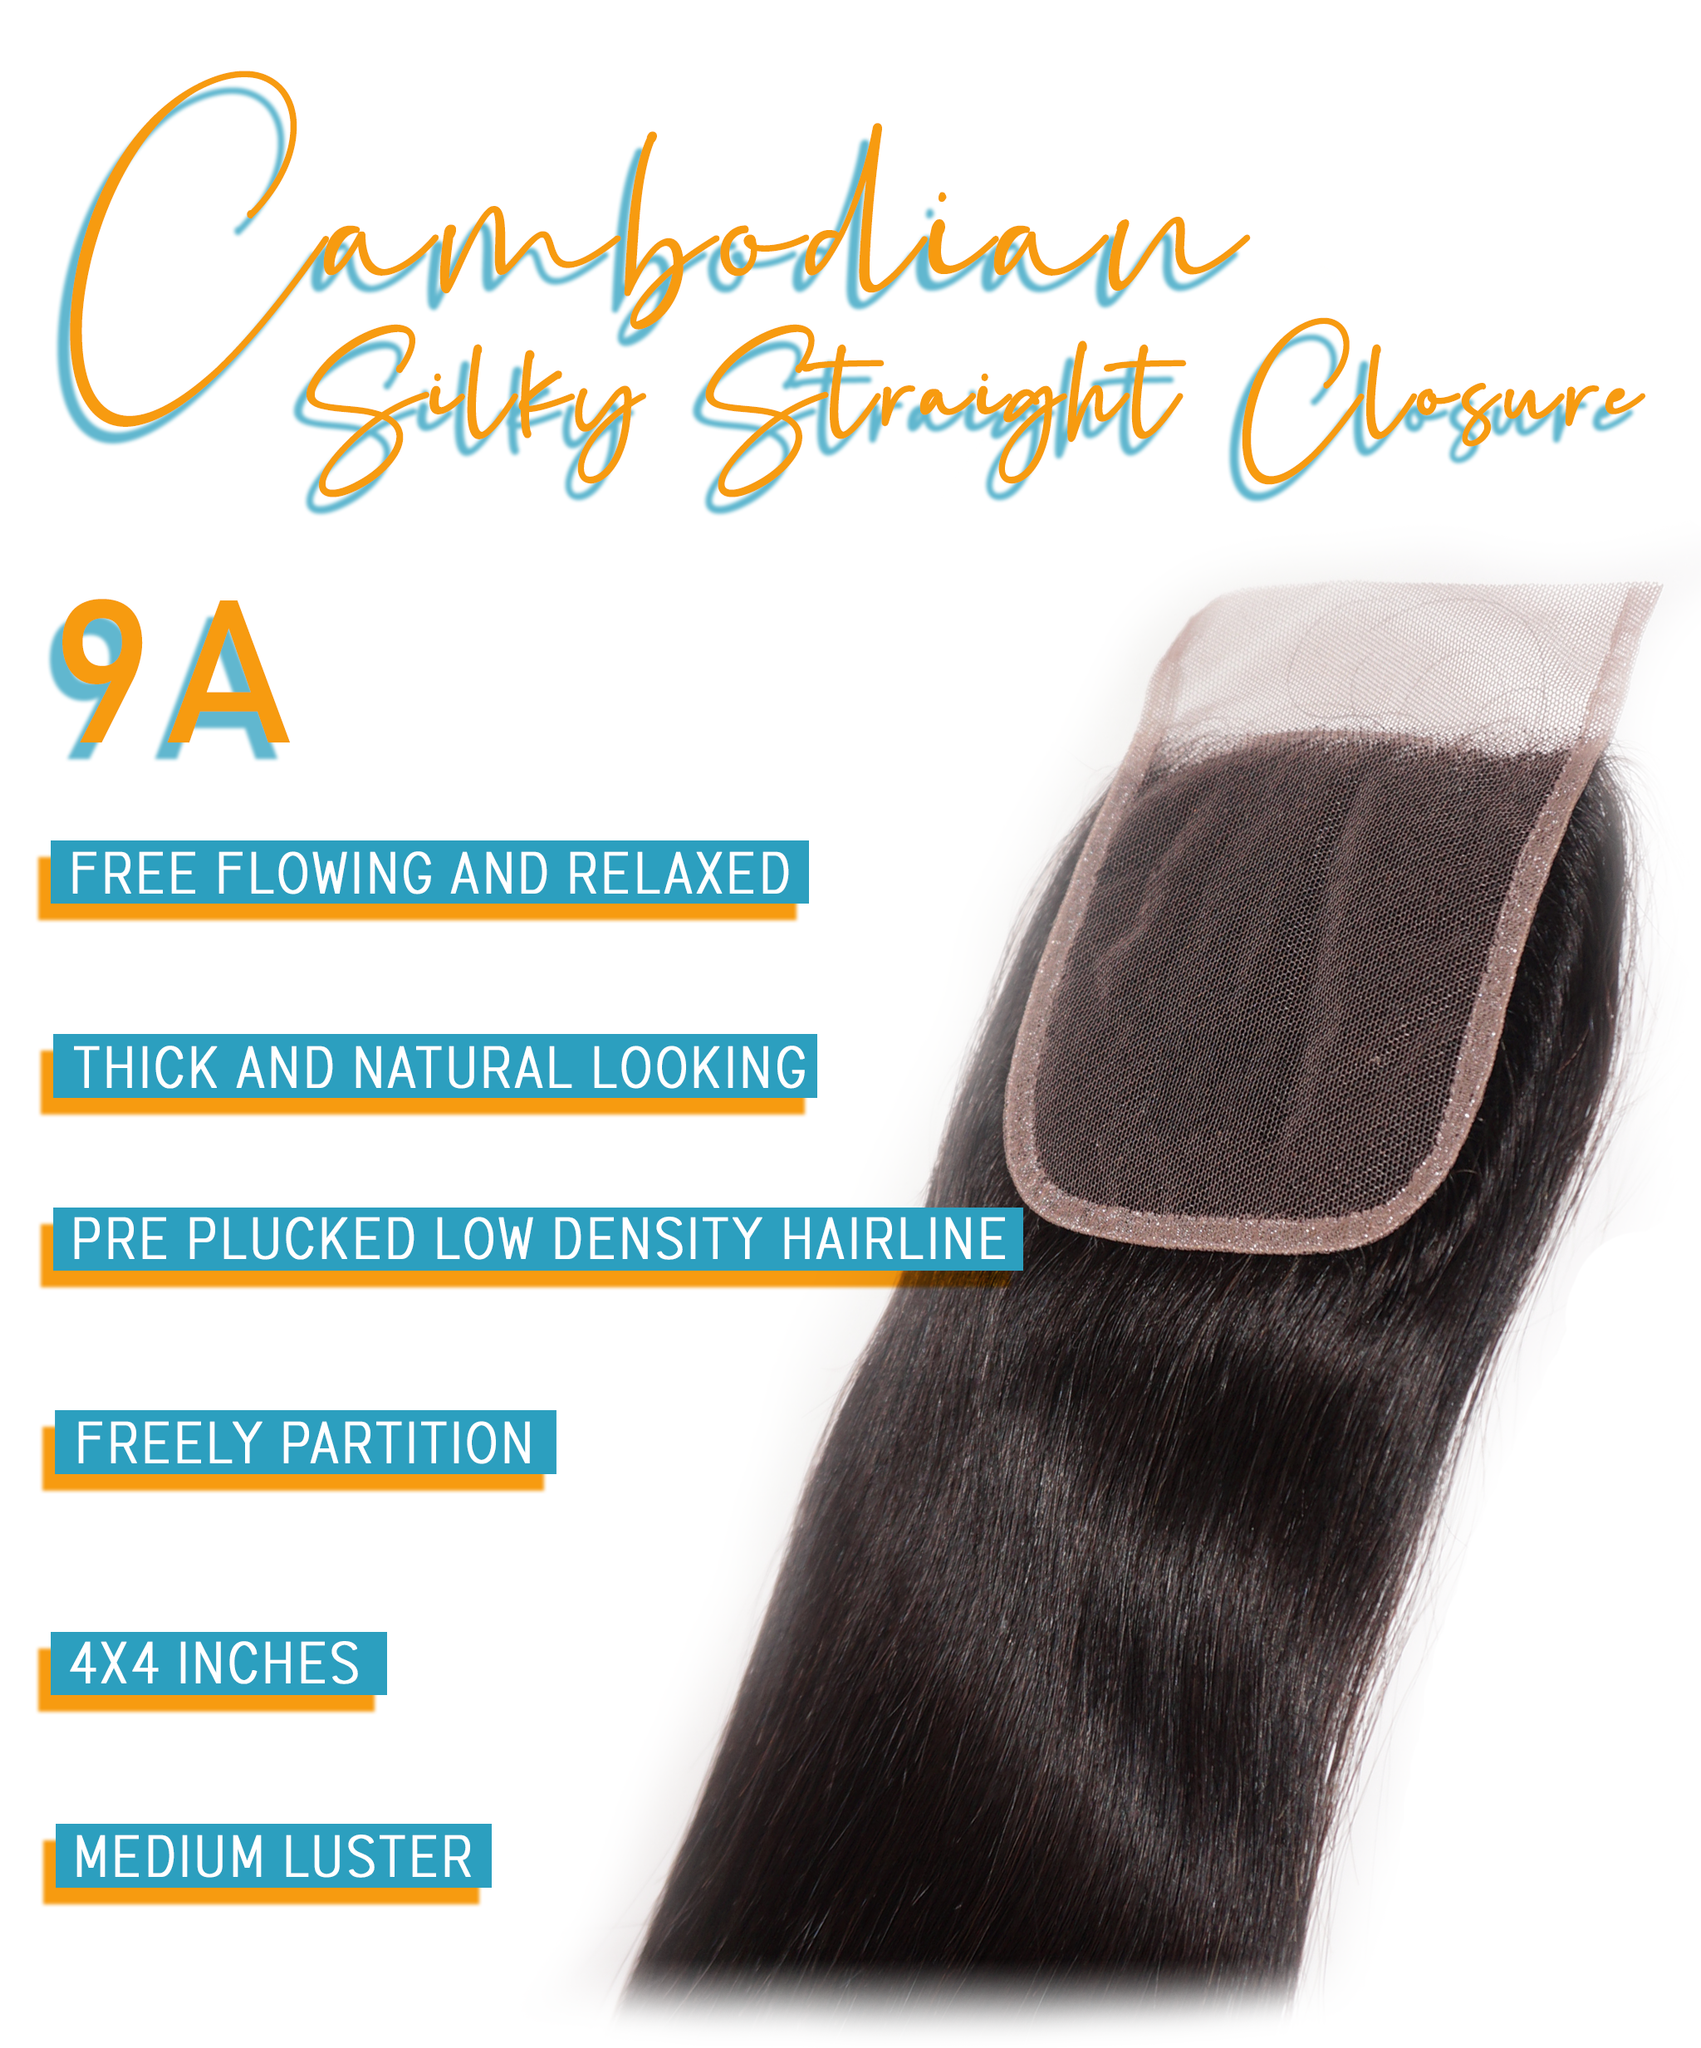 cambodian silky straight closure